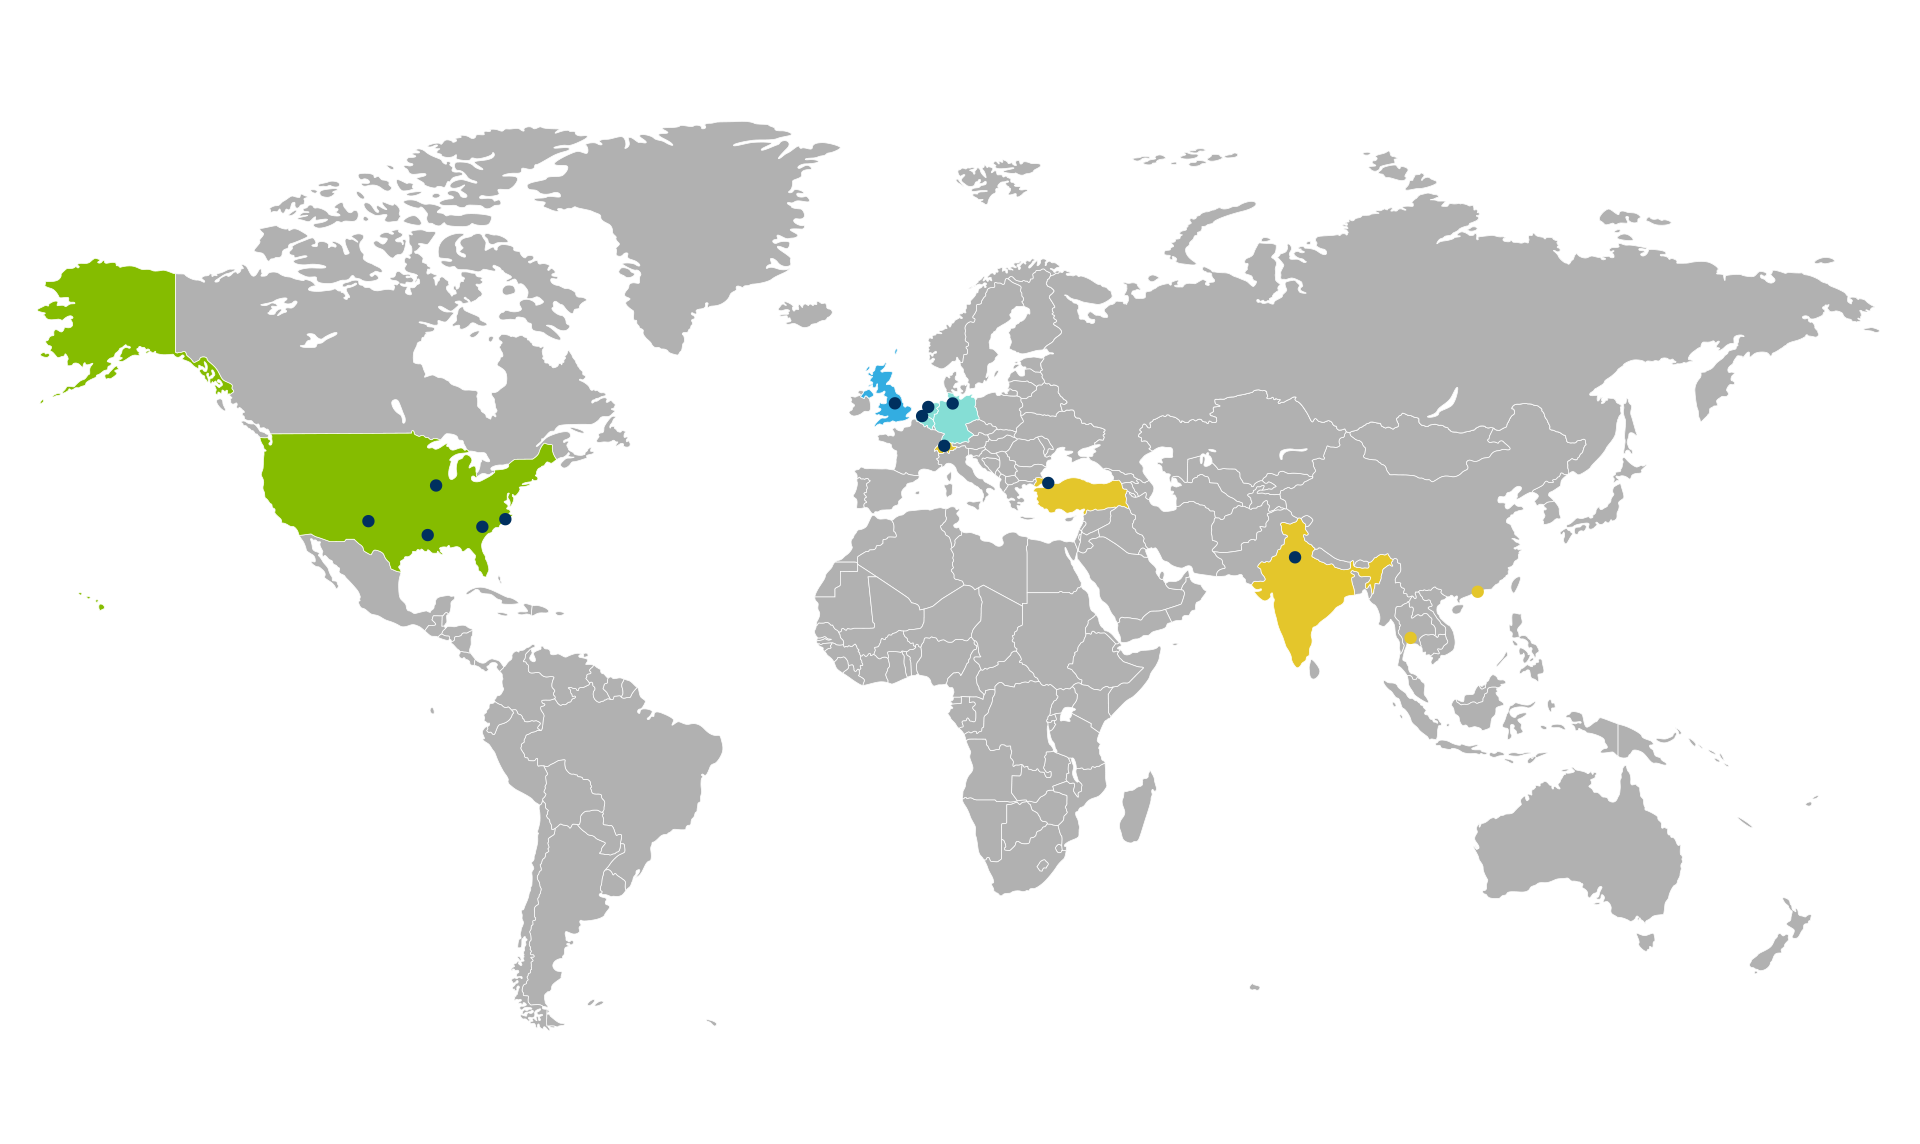 Map of EMR global locations